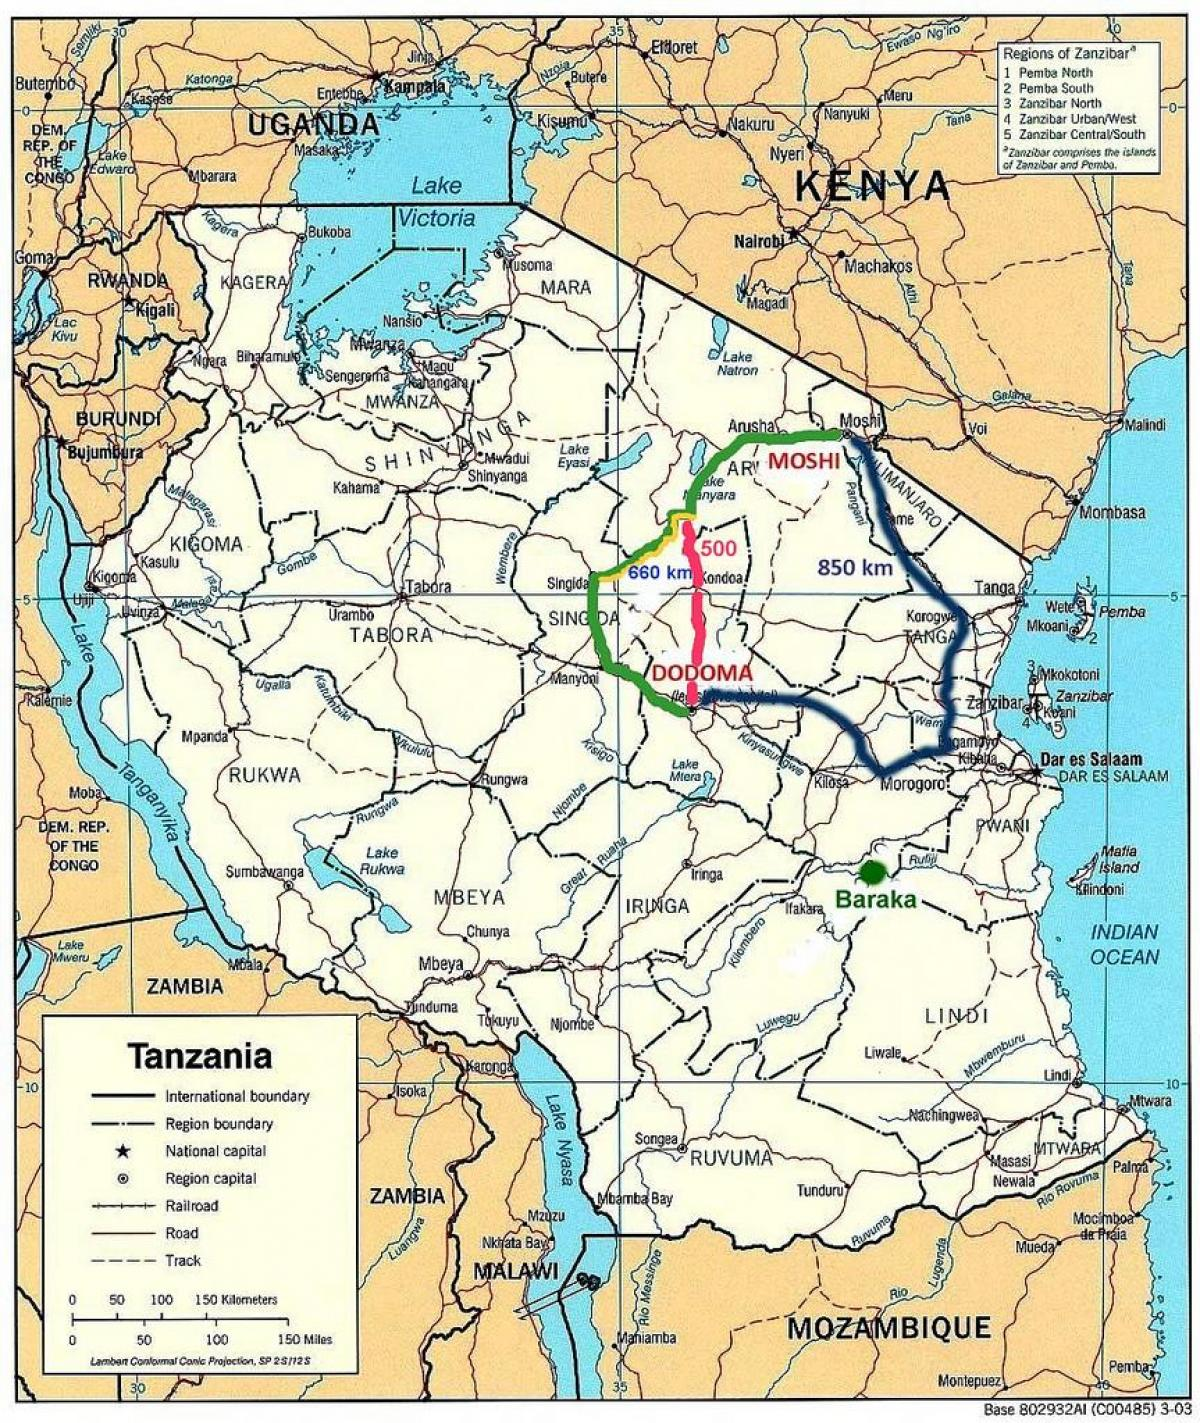 East Africa Road Map.Tanzania Road Map Tanzania Road Network Map Eastern